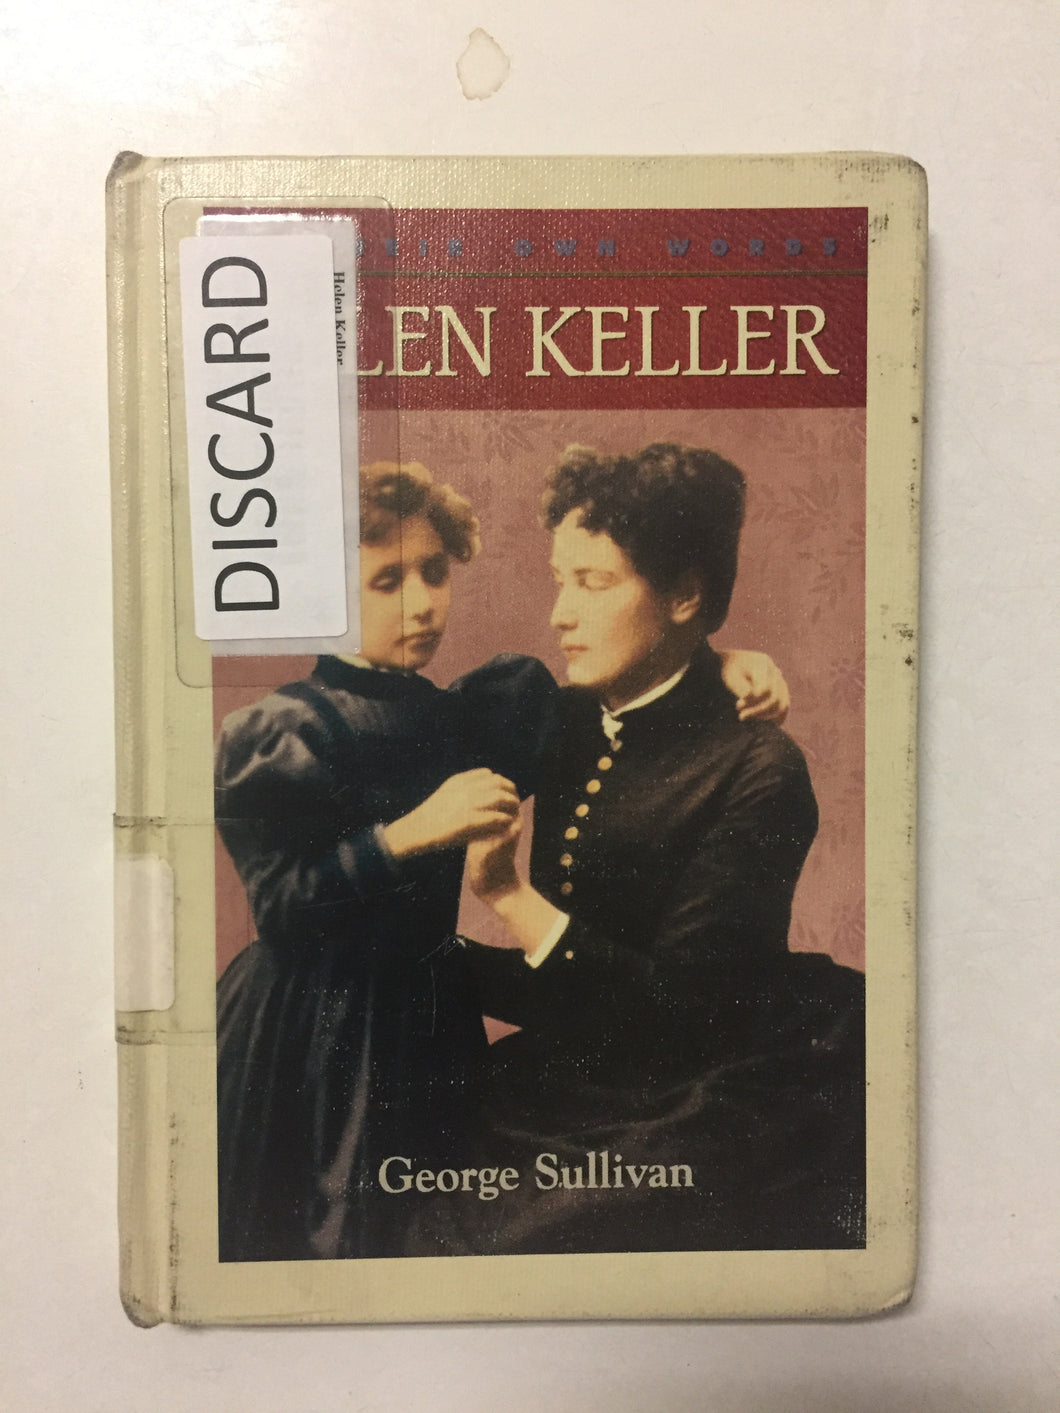 Helen Keller (In Their Own Words) - Slick Cat Books